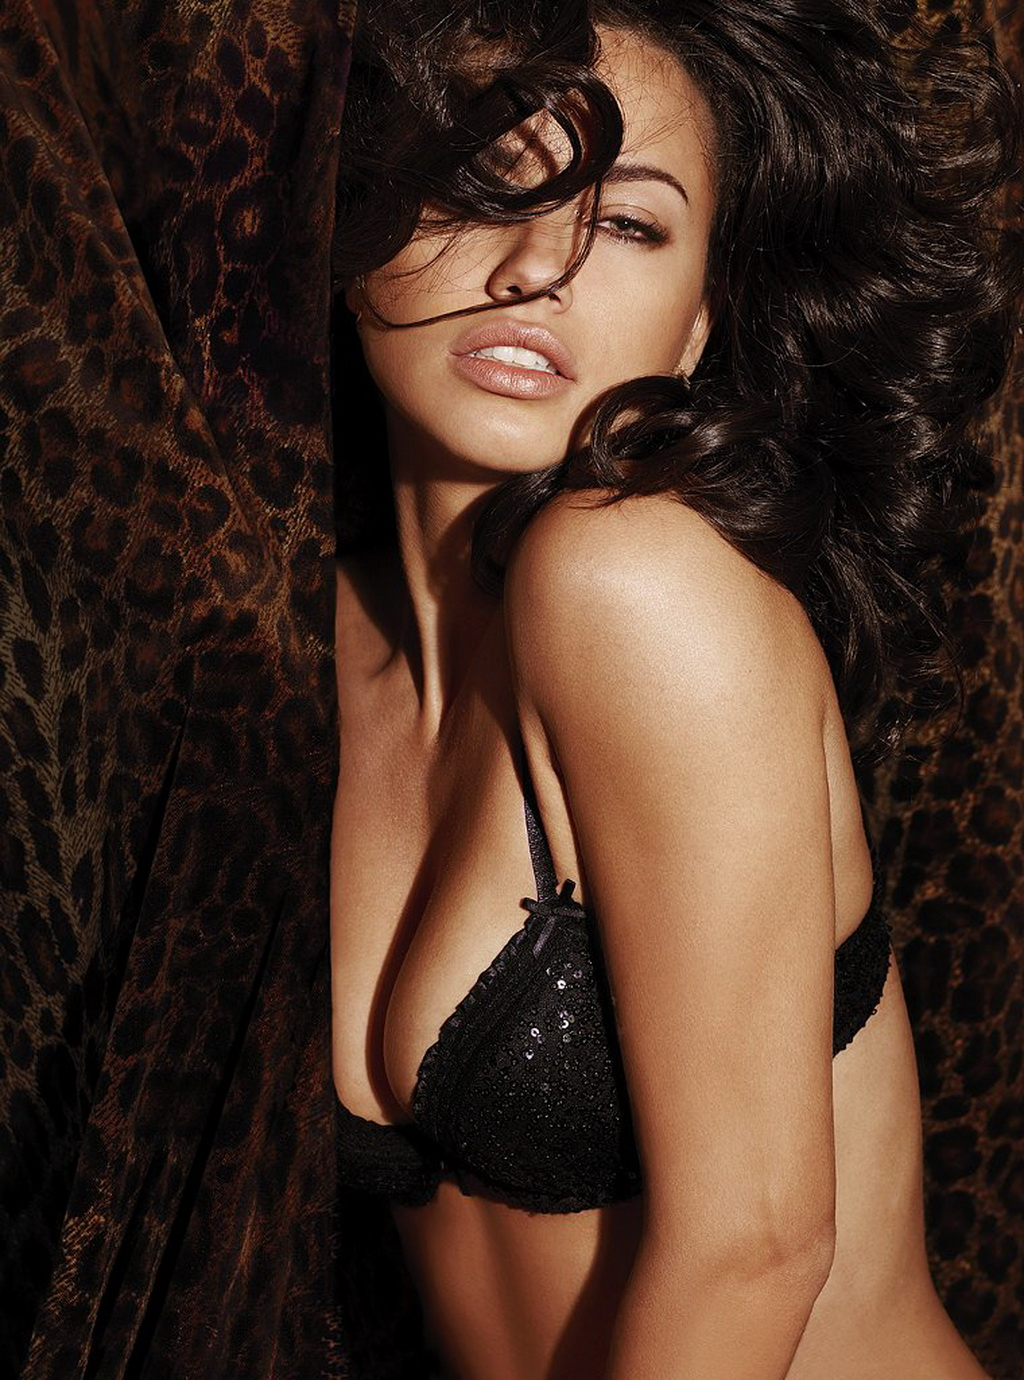 Please, that Adriana lima hot celebrity not